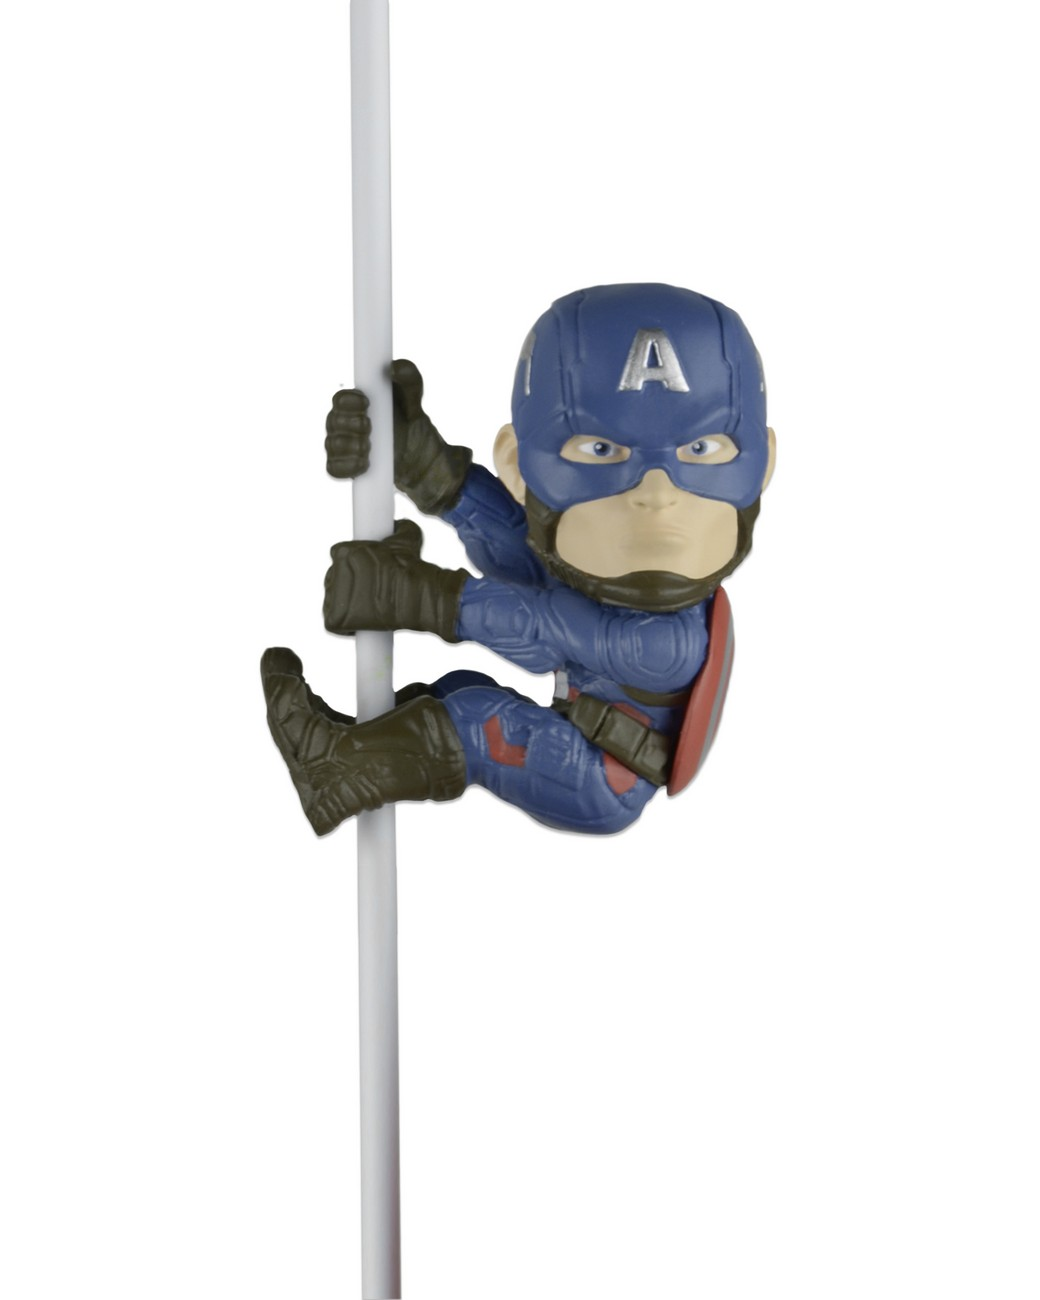 2 INCH SCALERS FIGURE NECA COLLECTS YOU MARVEL CAPTAIN AMERICA CIVIL WAR